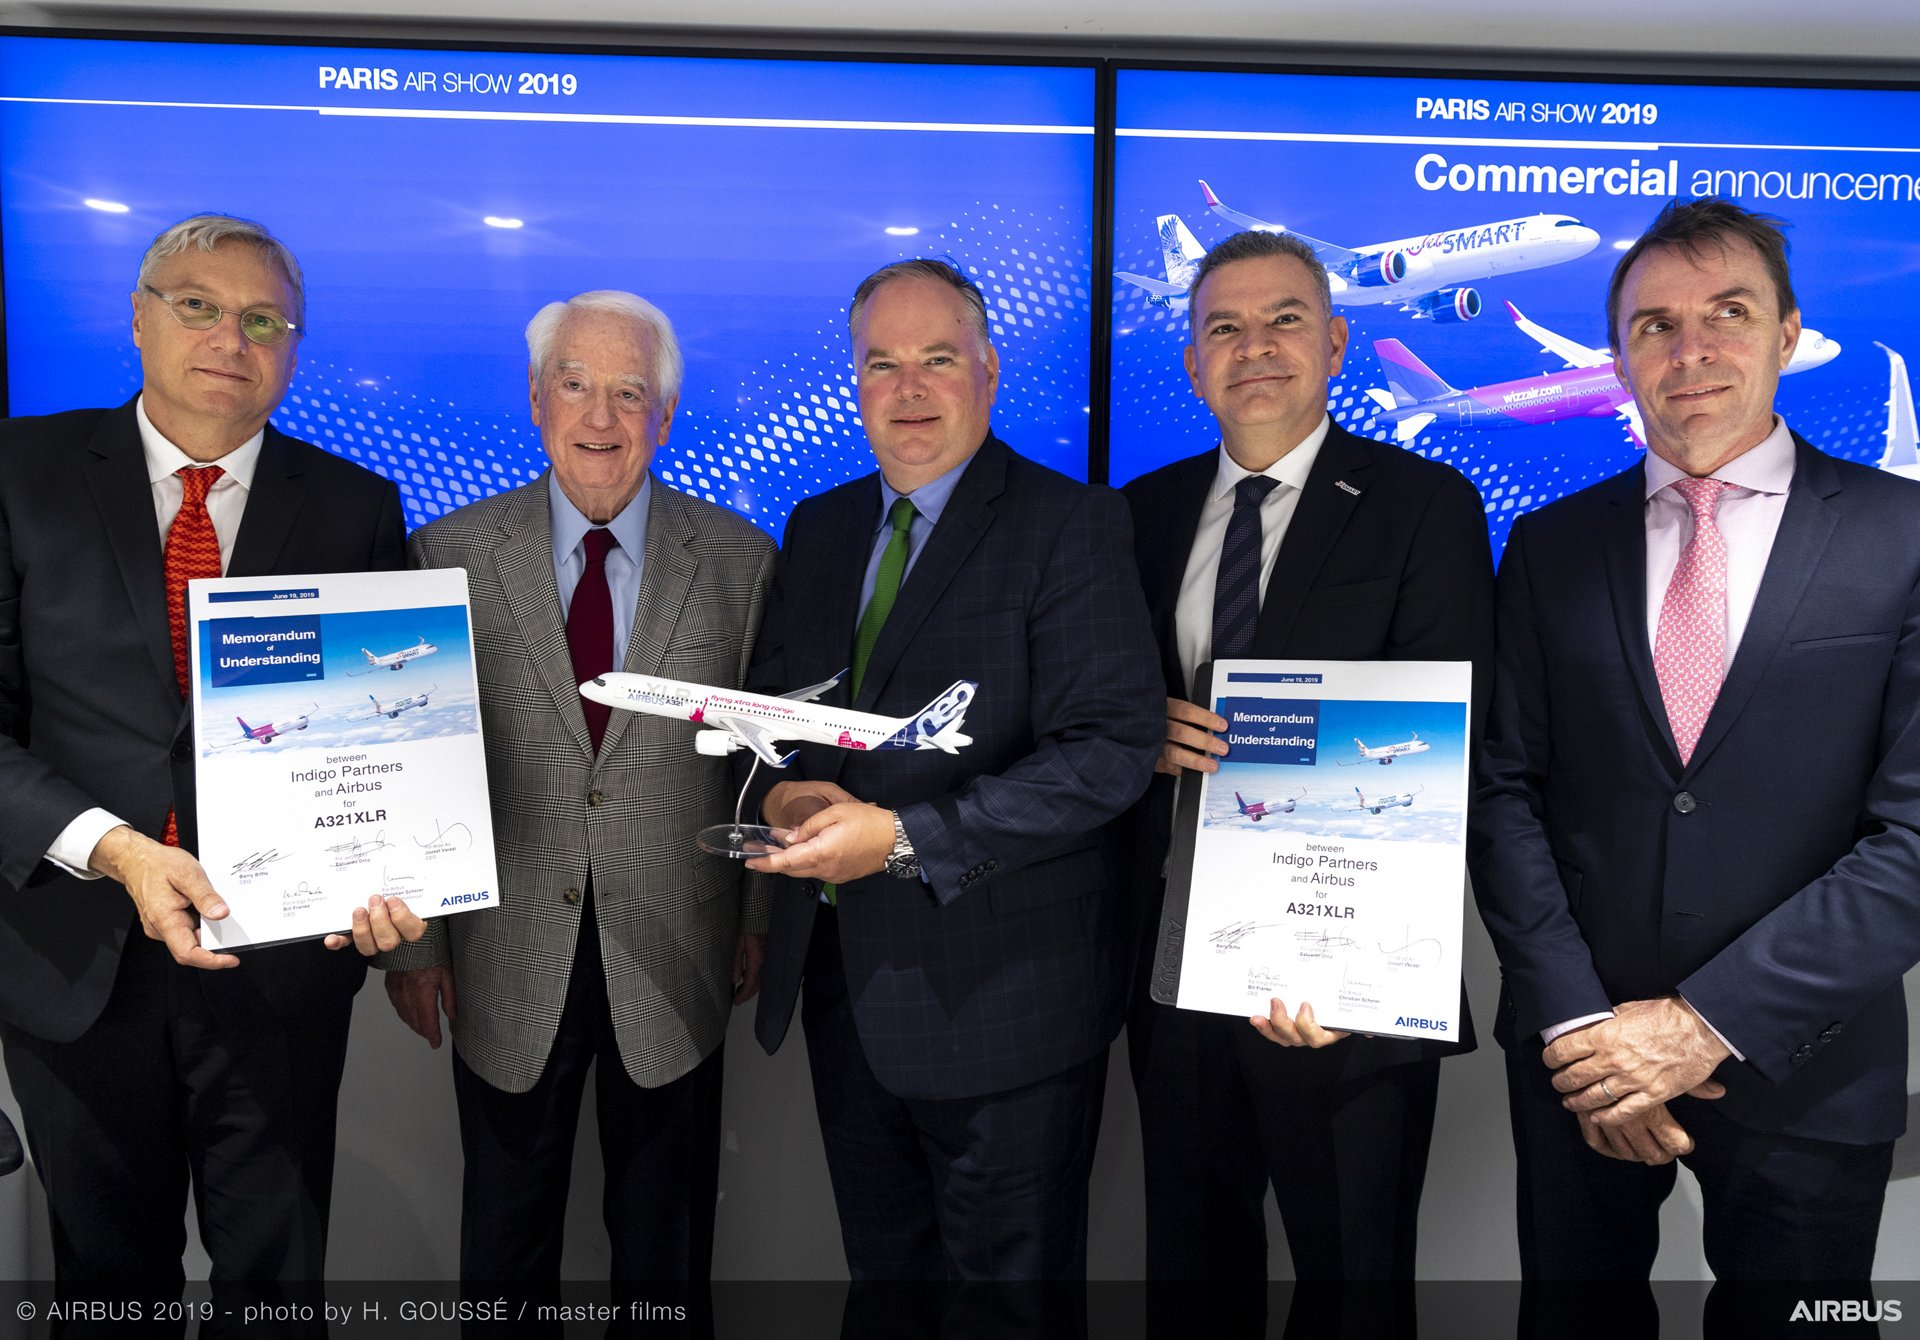 Indigo Partners' Memorandum of Understanding for 50 A321XLR aircraft – to be operated by Frontier Airlines, JetSMART and Wizzair – is marked at the 2019 Paris Air Show by (from left to right): Airbus Chief Commercial Officer Christian Scherer; Bill Franke, President of Frontier Airlines; Barry Biffle, Chief Executive Officer of Frontier Airlines; Estuardo Ortiz, Chief Executive Officer & Founder of JetSMART Airlines; and Jozsef Varadi, Chief Executive Officer of Wizzair